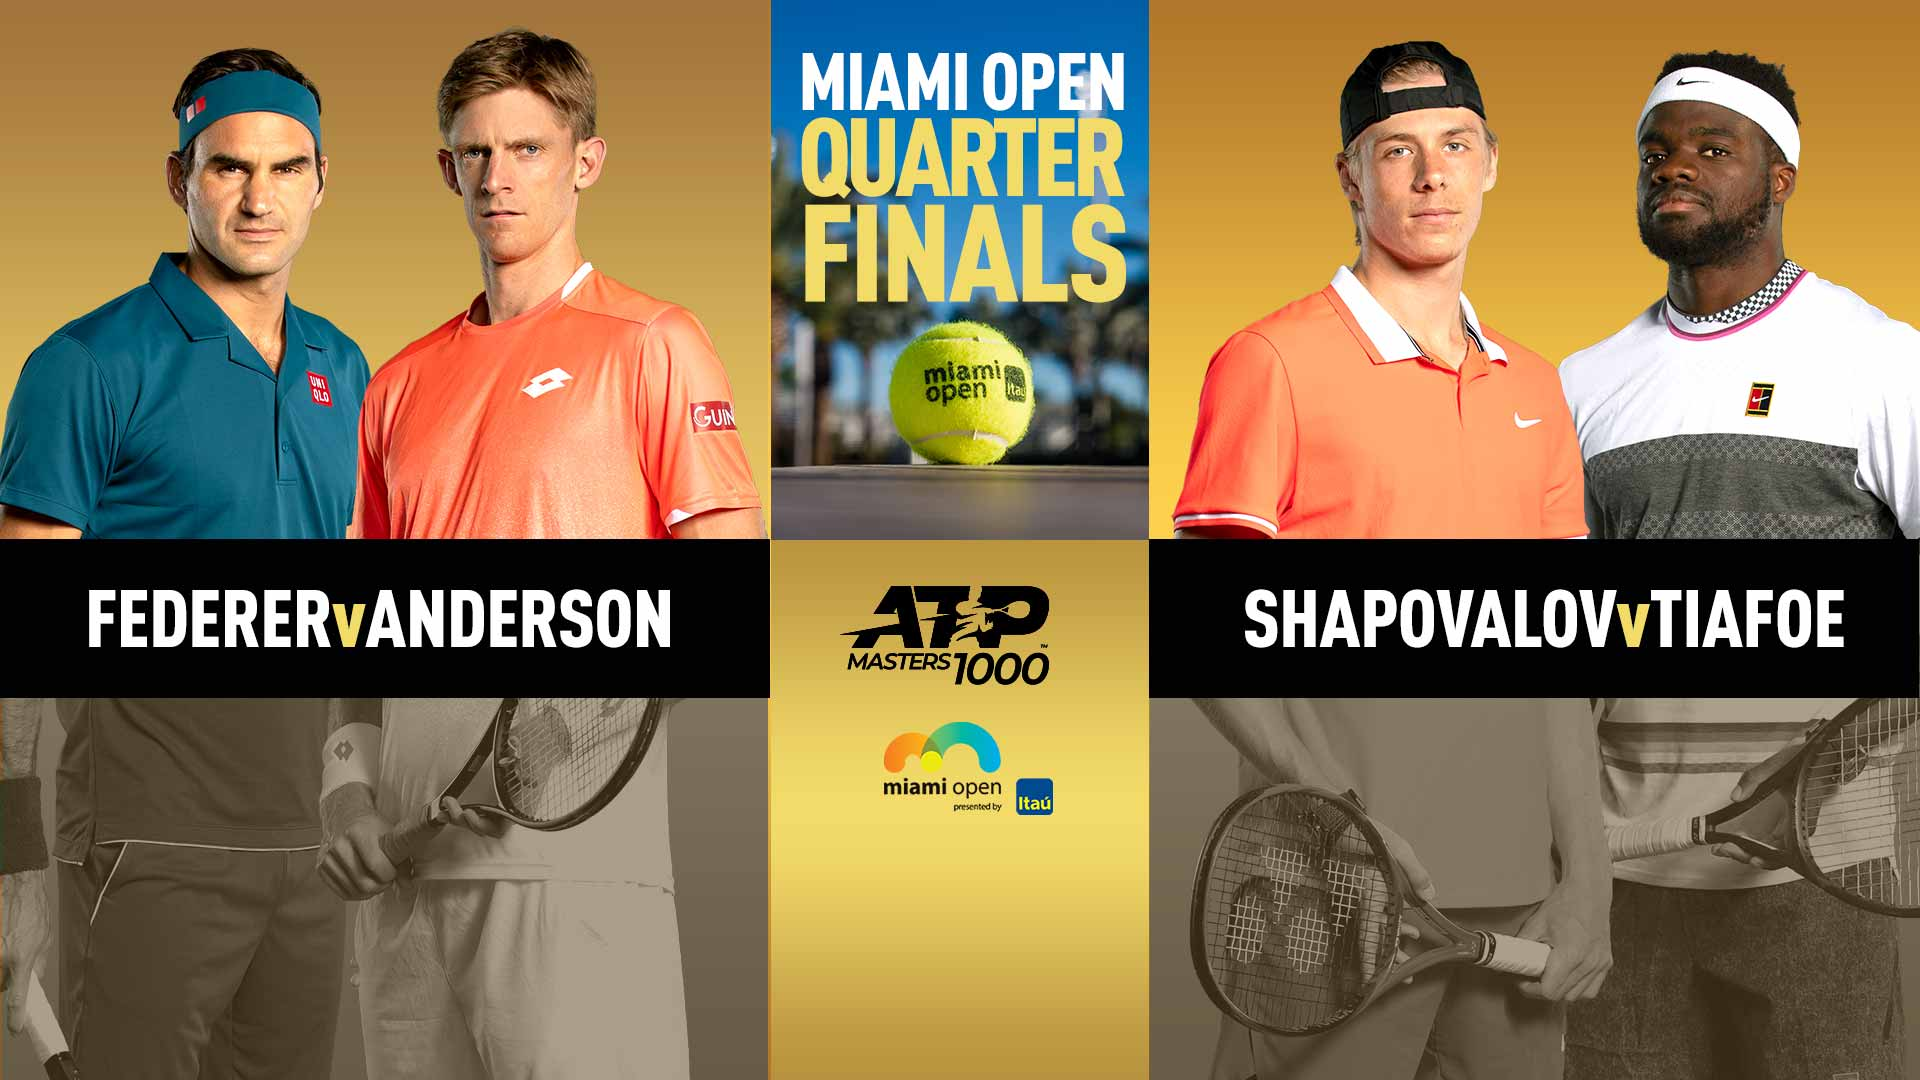 Miami Open Thursday quarter-final lineup